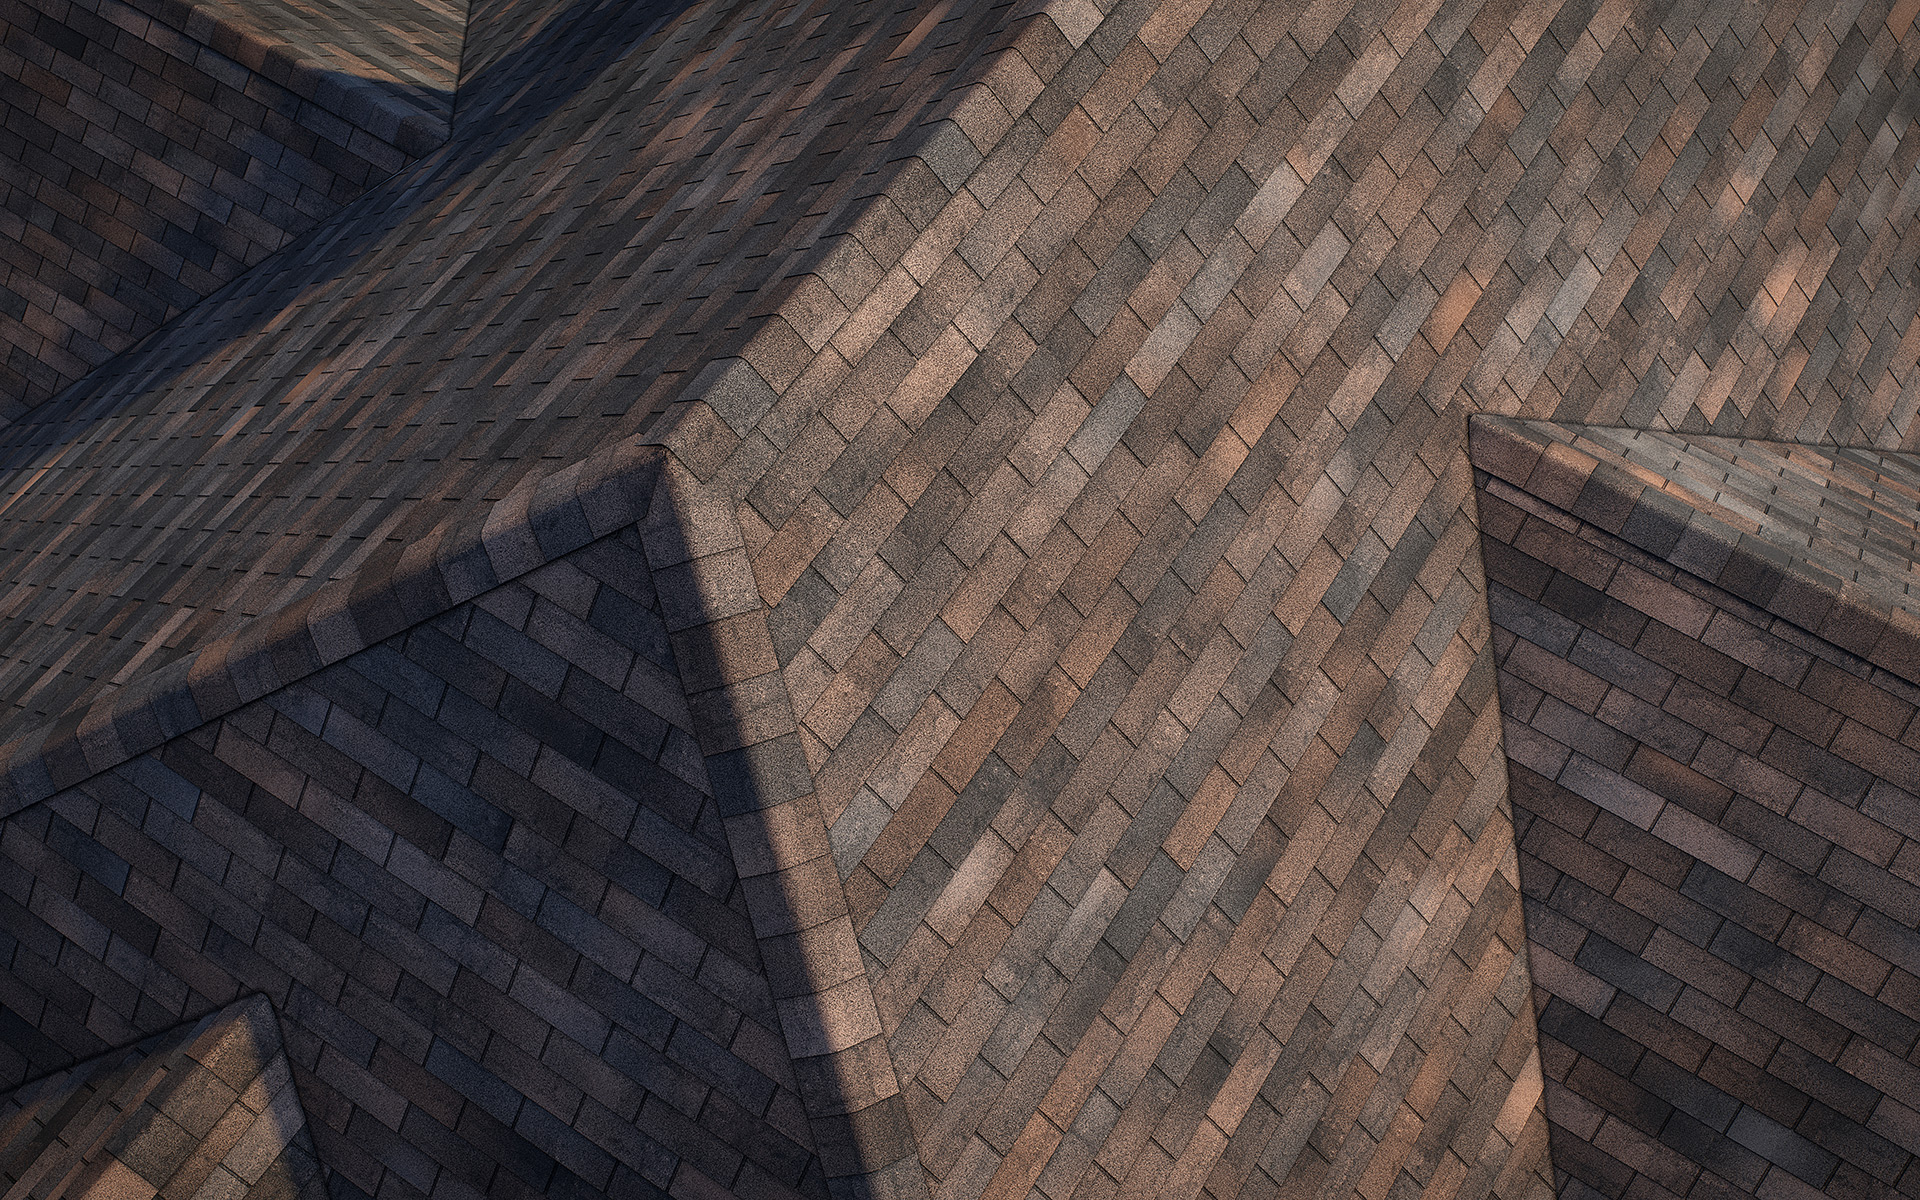 3-tab asphalt roof shingles oakwood color 3D model preset for 3dsmax and RailClone. Rendered with vray, made for arch-viz.